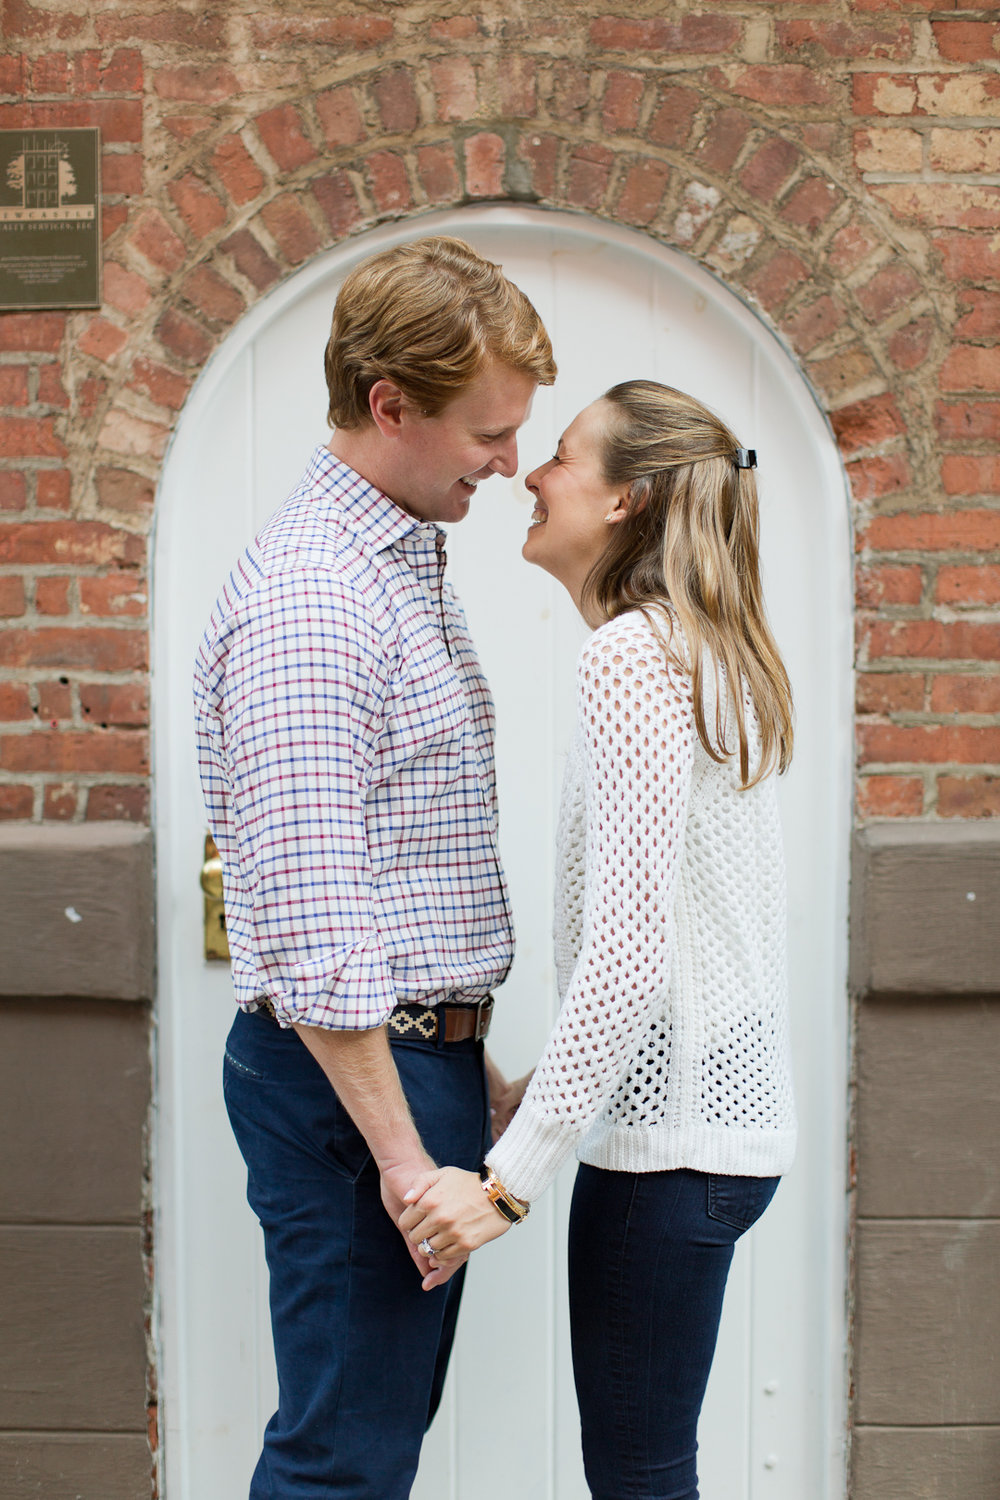 Melissa Kruse Photography - Megan & Tyler West Village Engagement Photos-22.jpg